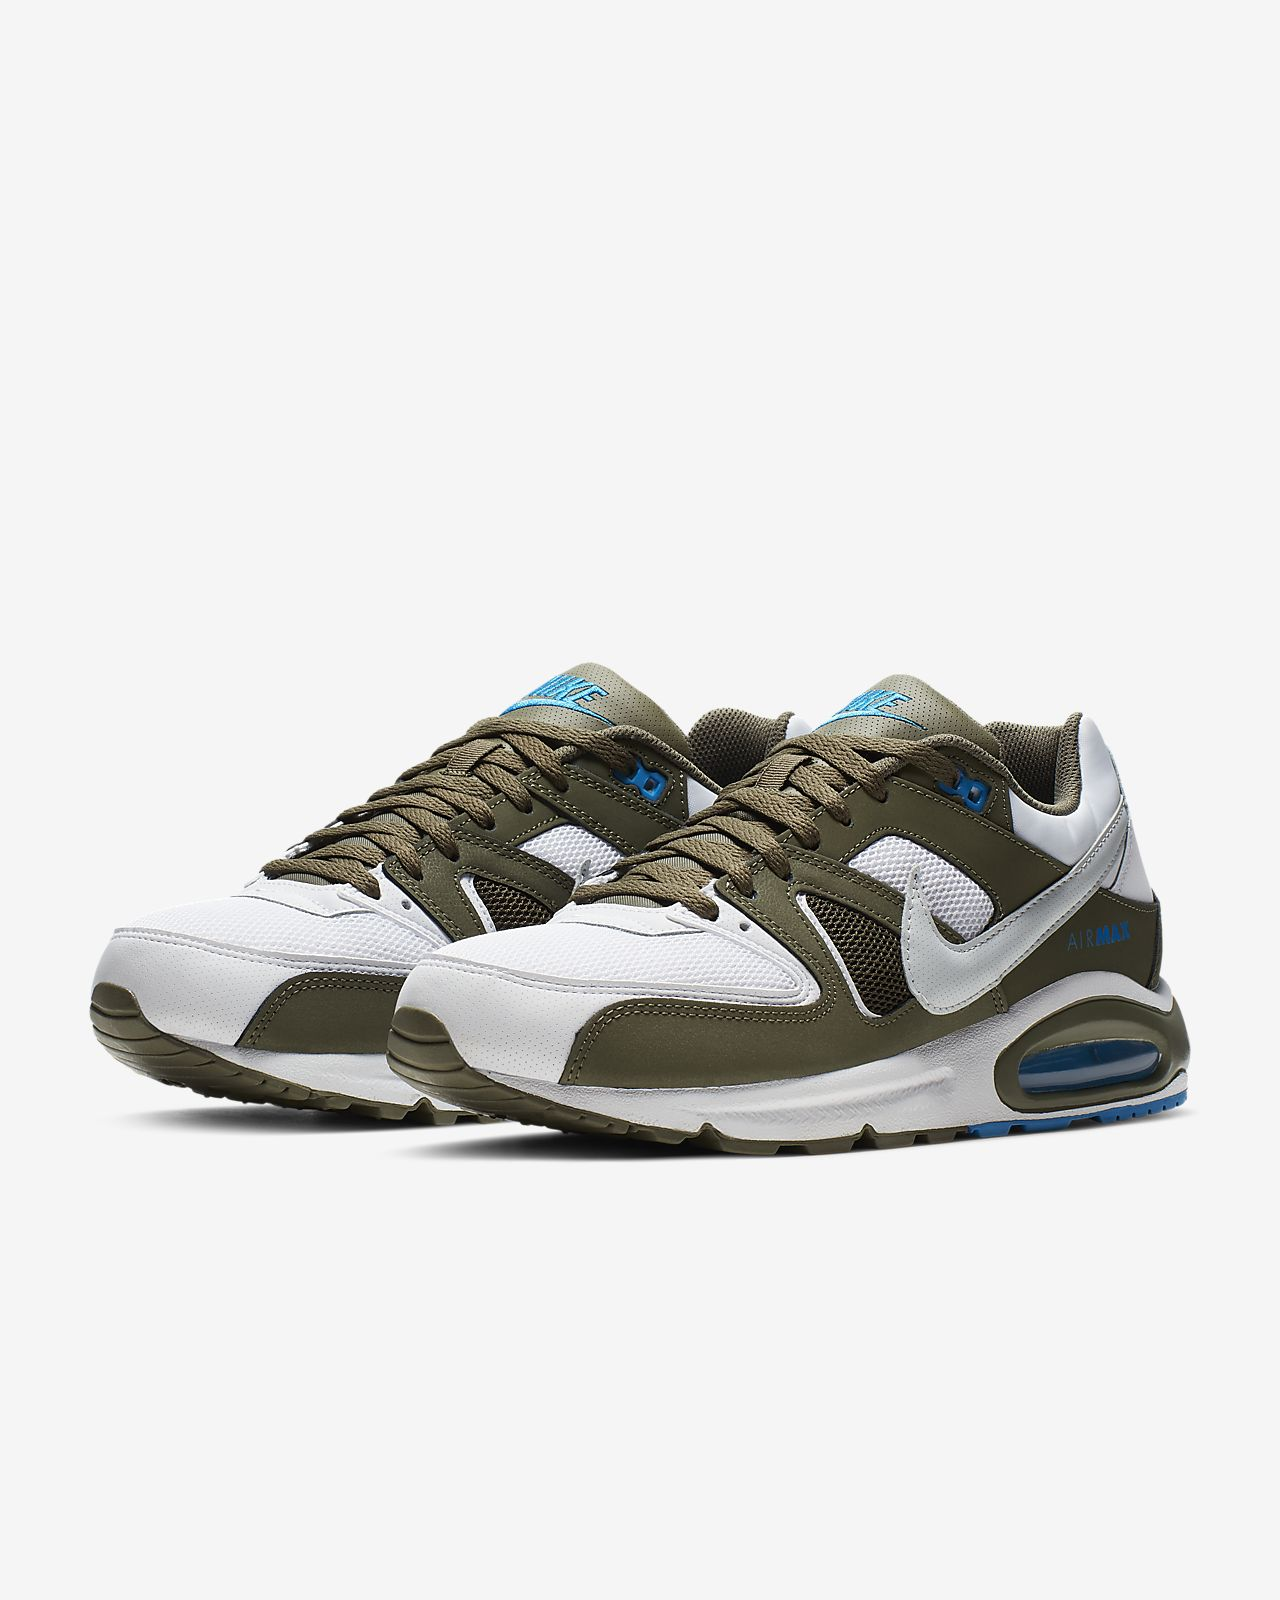 – Pour Nike Chaussure Max Homme Air Command 1Tl3FKJc